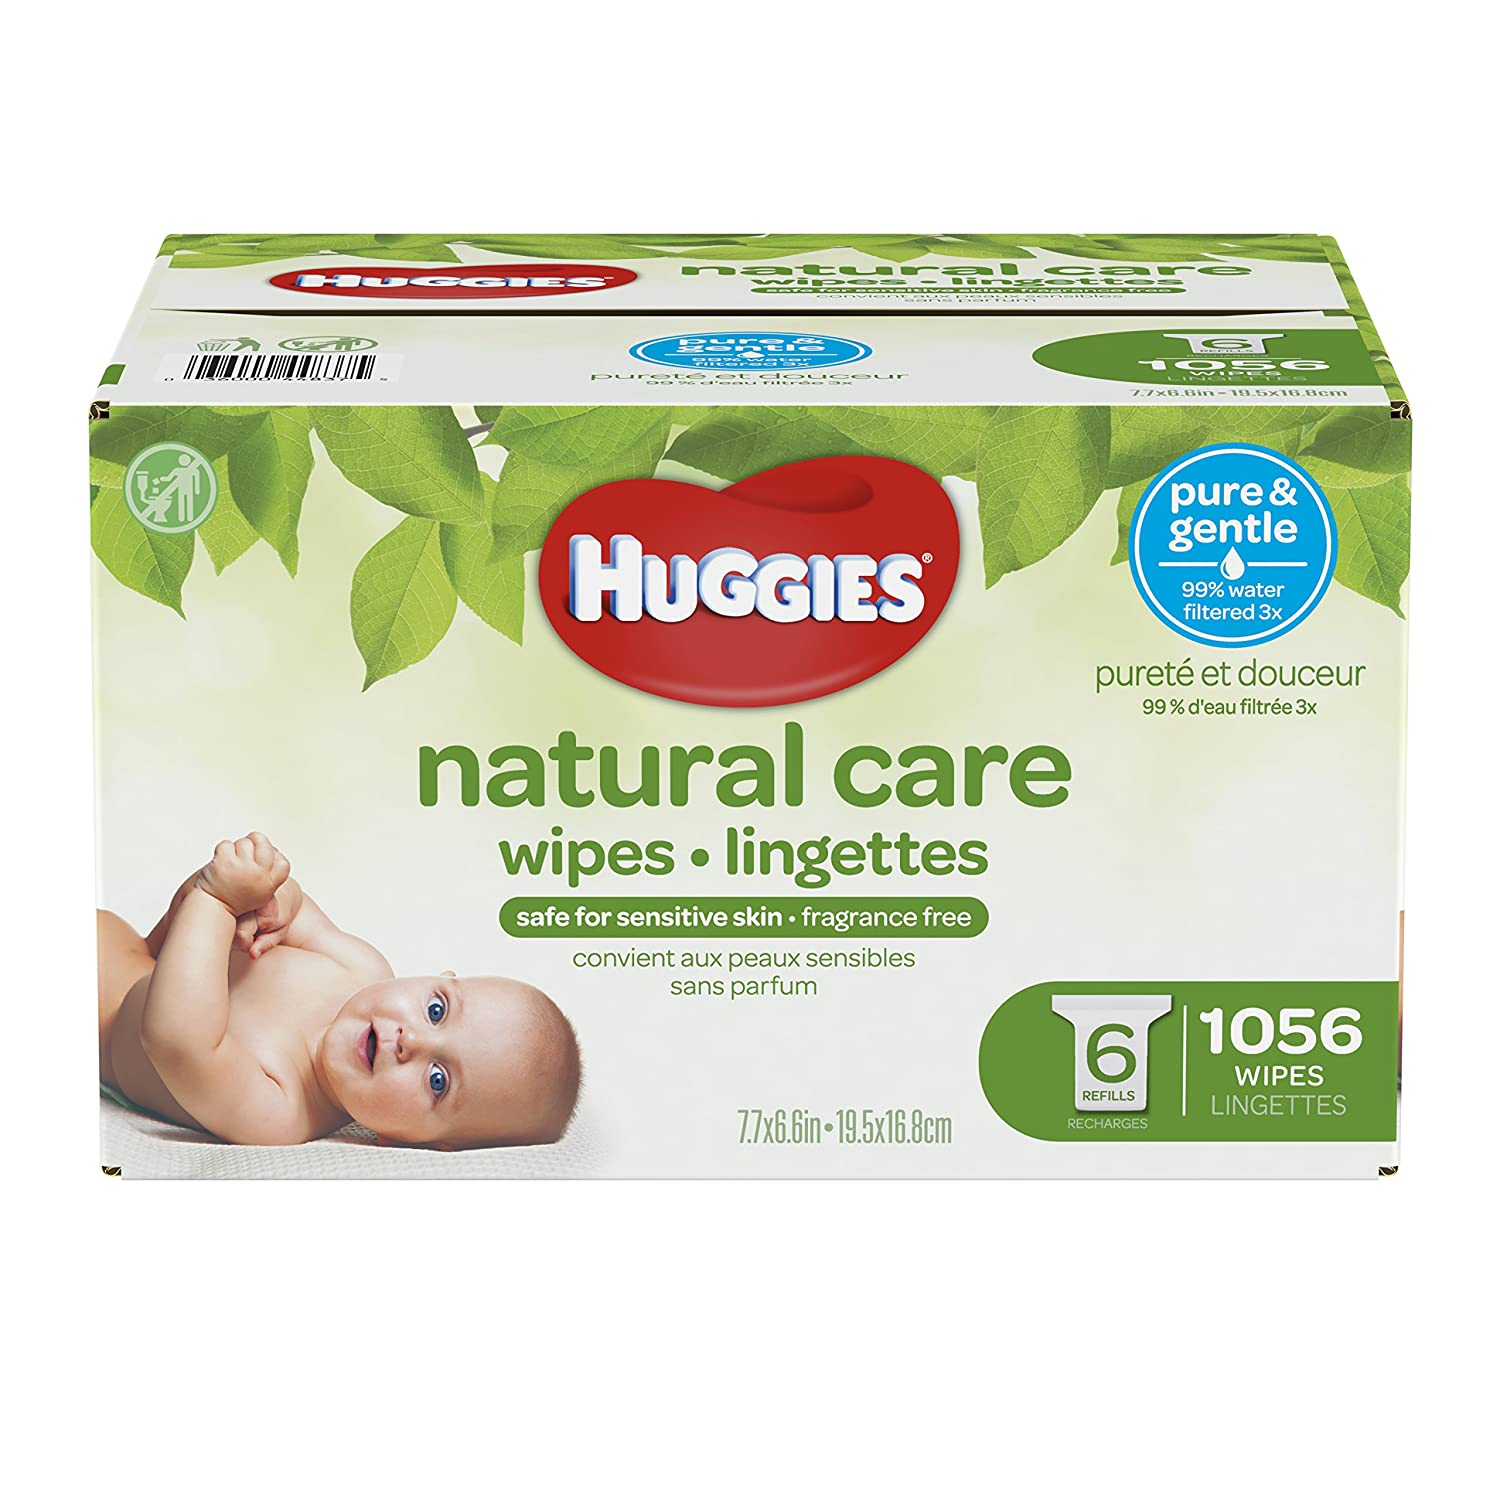 Huggies Natural Care Fragrance-Free Baby Wipes, Refill Pack, 1056 Count Kimberly Clark